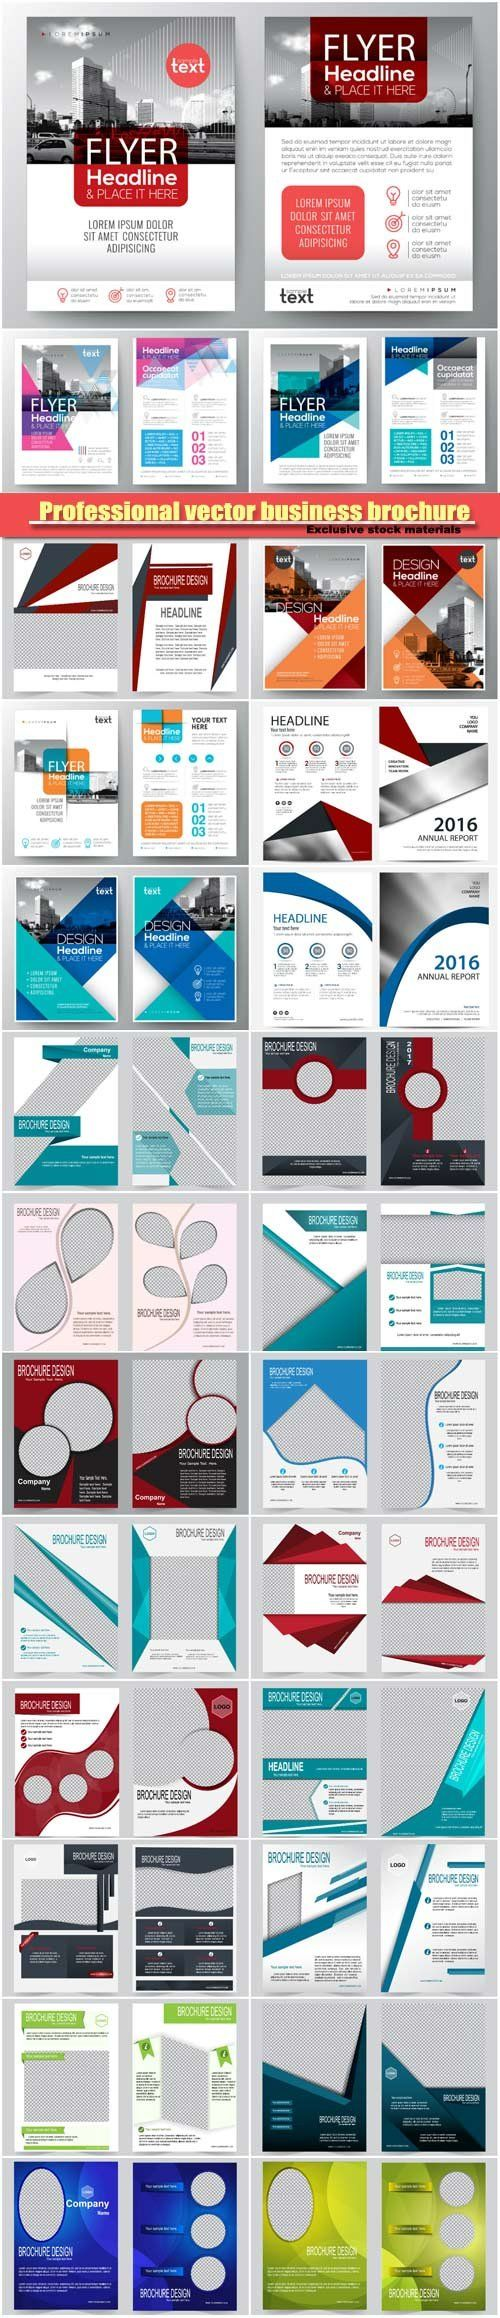 best images about collateral design texts facts professional vector business brochure annual report cover flyer poster design